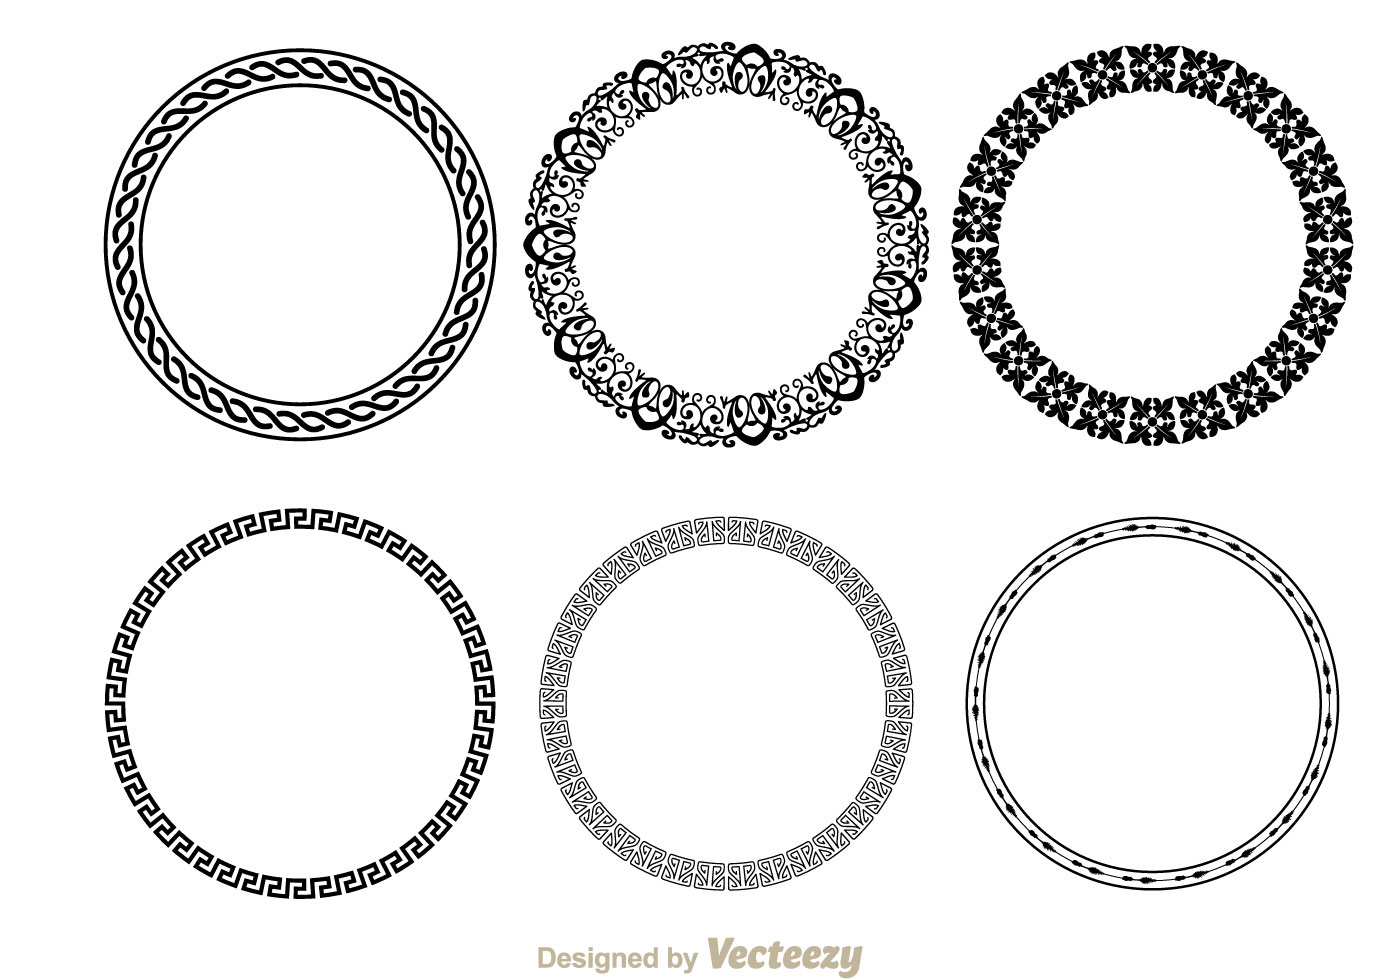 Circle fancy line decoration download free vector art stock circle fancy line decoration download free vector art stock graphics images thecheapjerseys Images